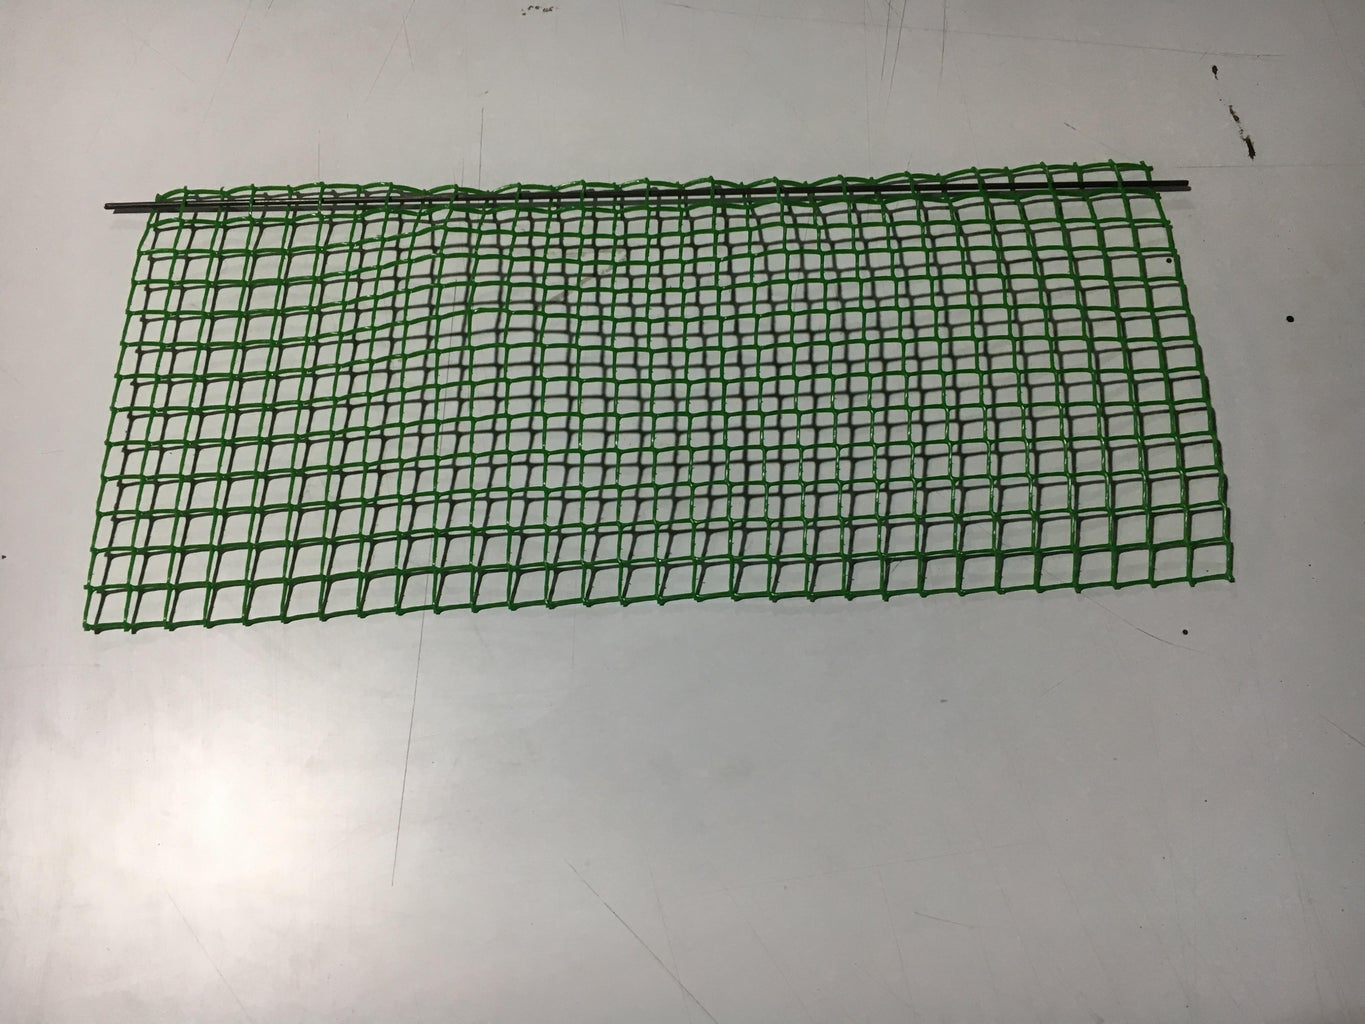 Insert the Metal Rods Through the Mesh.